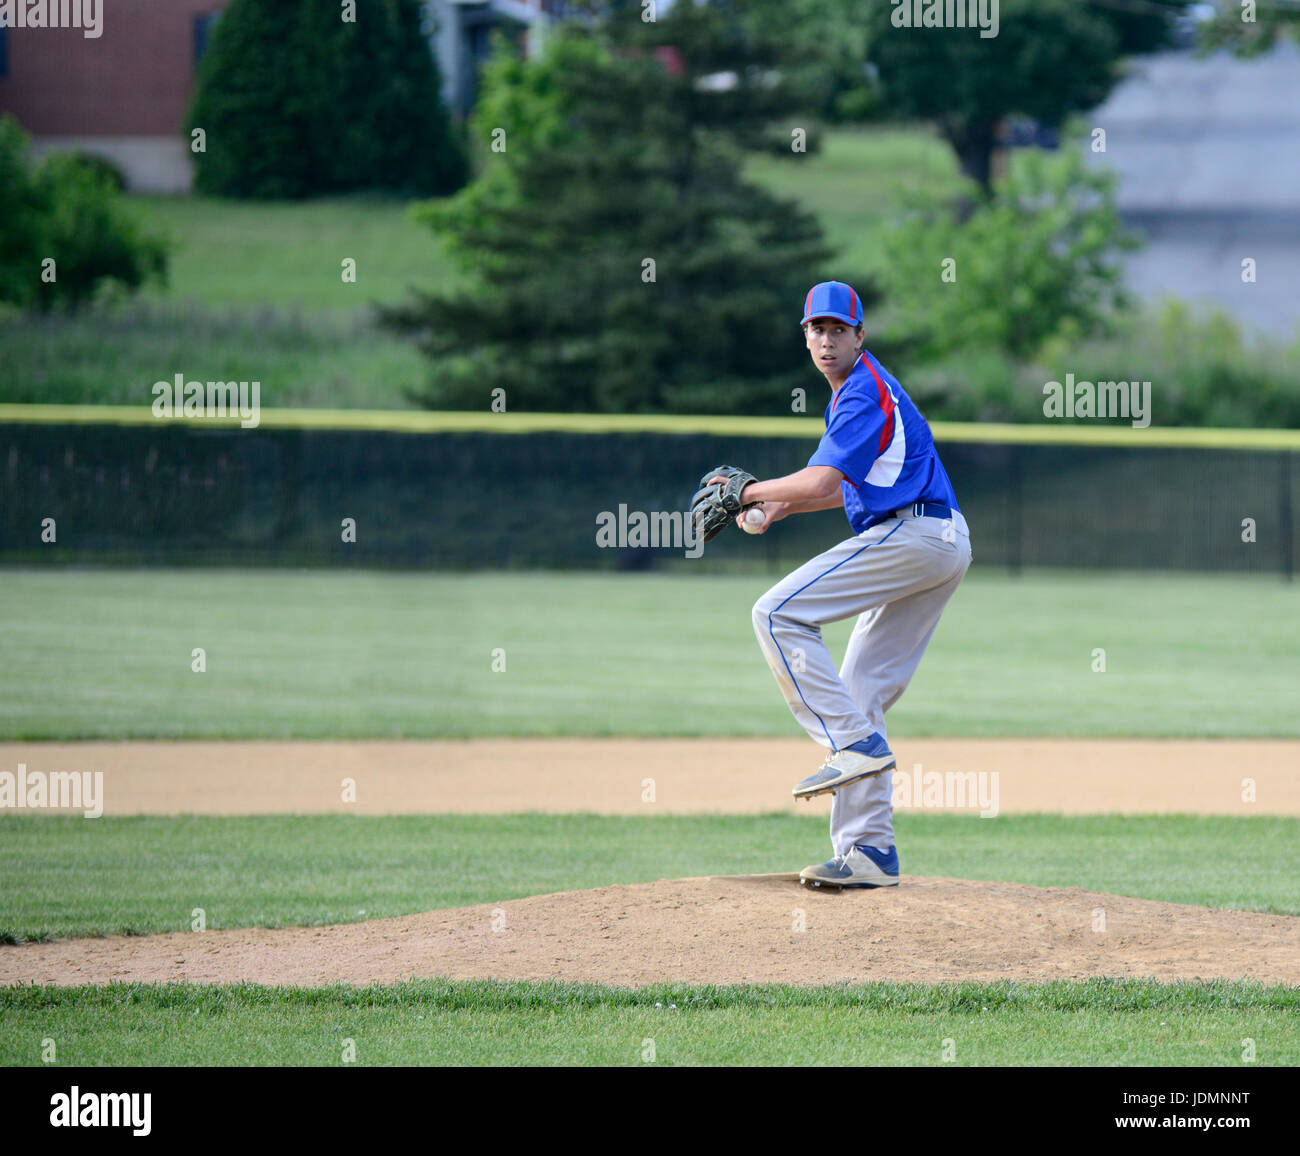 teenage boy winding up and ready to throw a baseball on the pitching mound - Stock Image